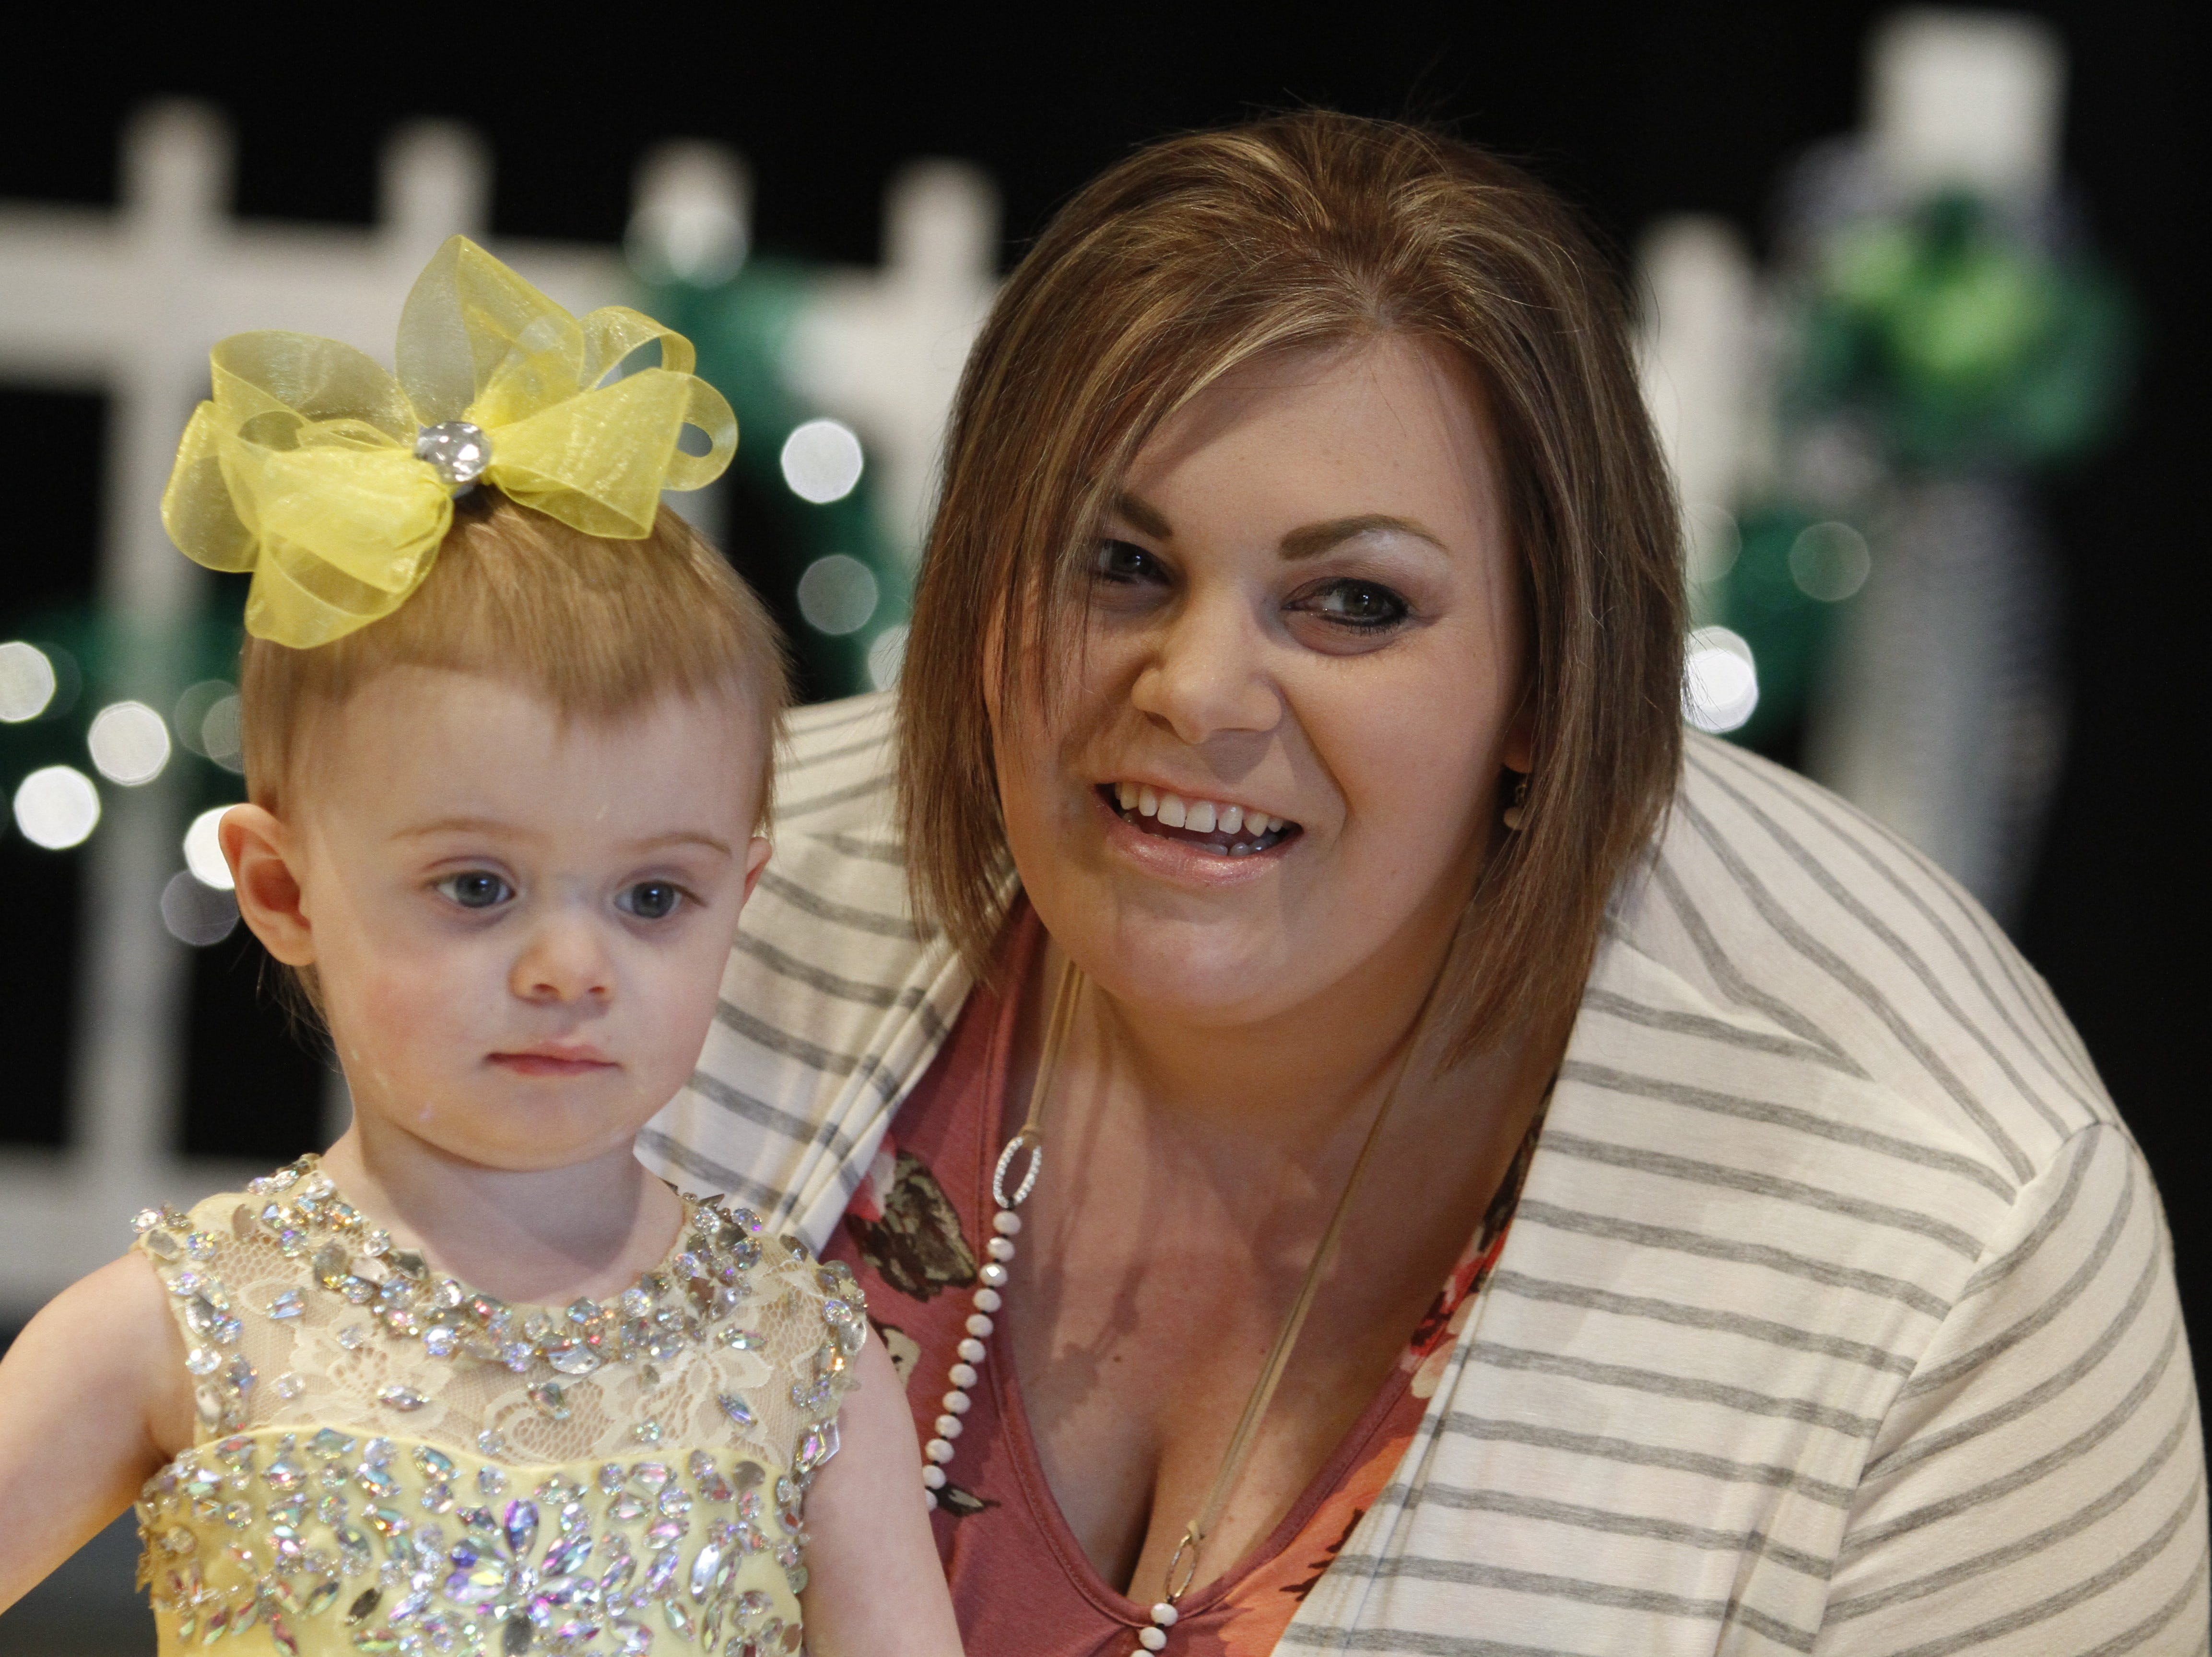 Kami Beard escorts her daughter Gracie Beard as she competes in the Houston County Tiny Princess 1-year-old group during the 2019 Houston County Tiny Prince, Tiny Princess Pageant at Houston County High School, on Saturday, March 2, 2019 in Erin, Tenn.